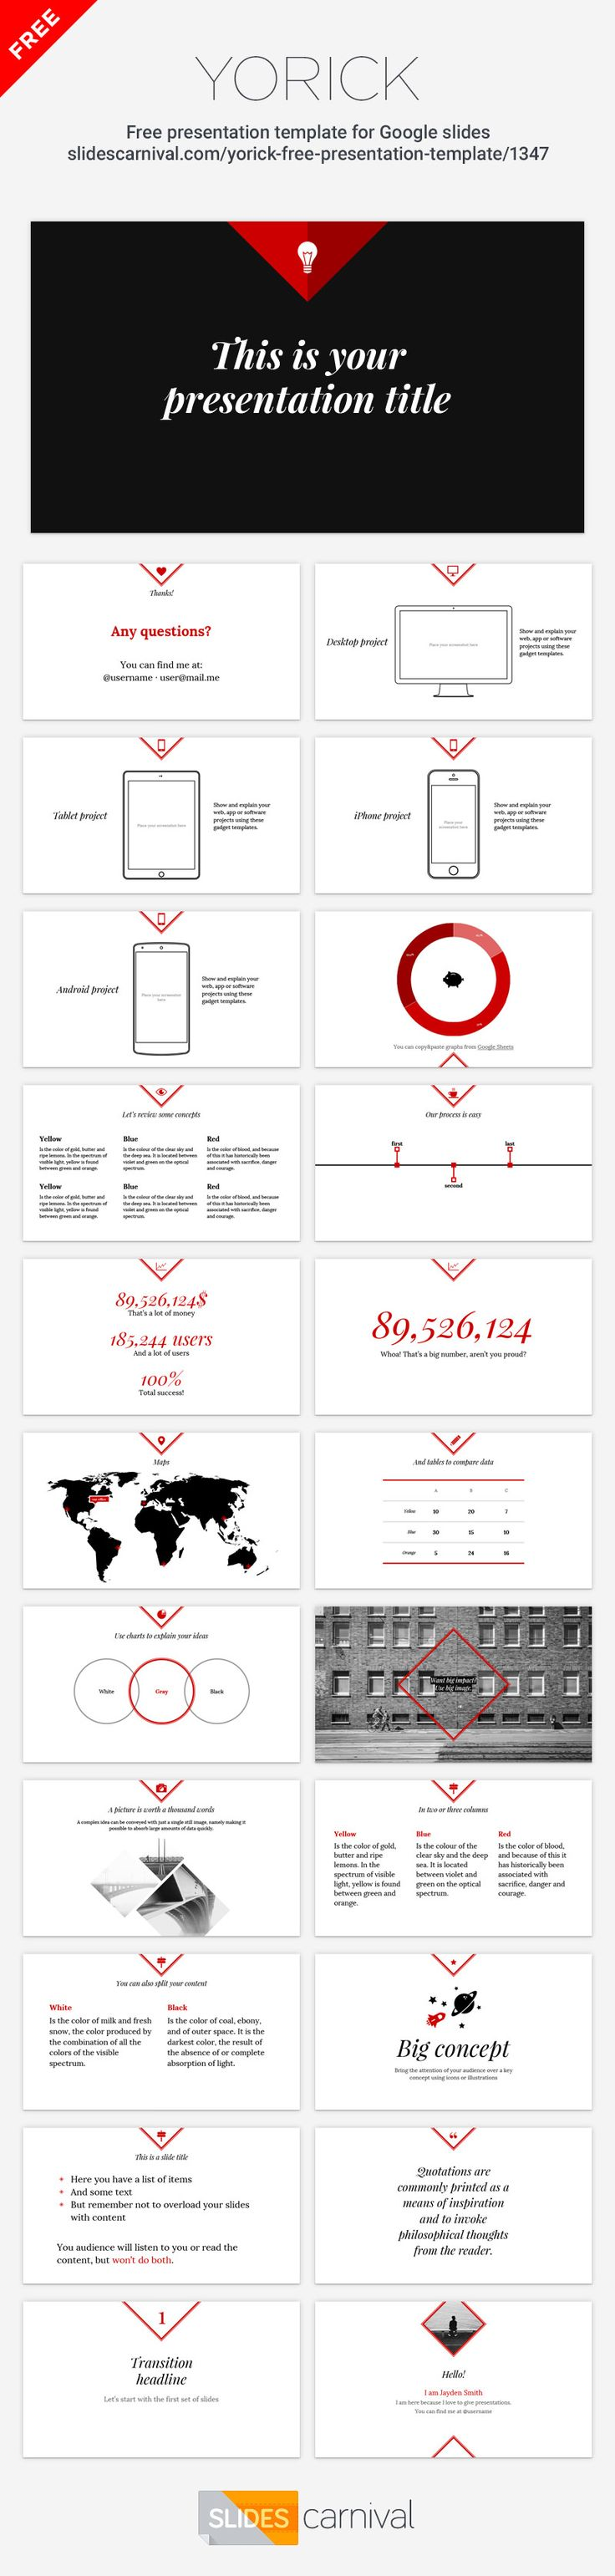 """Yorick is an elegant free presentation template that adapts easily to any brand by changing one single color. Thanks to its minimal style in white and red your message will shine, a great design if you want your audience to focus on content without """"graphic"""" distractions. It works better with fashion, literature, or humanist topics, use it to deliver a clear and professional presentation to your audience."""